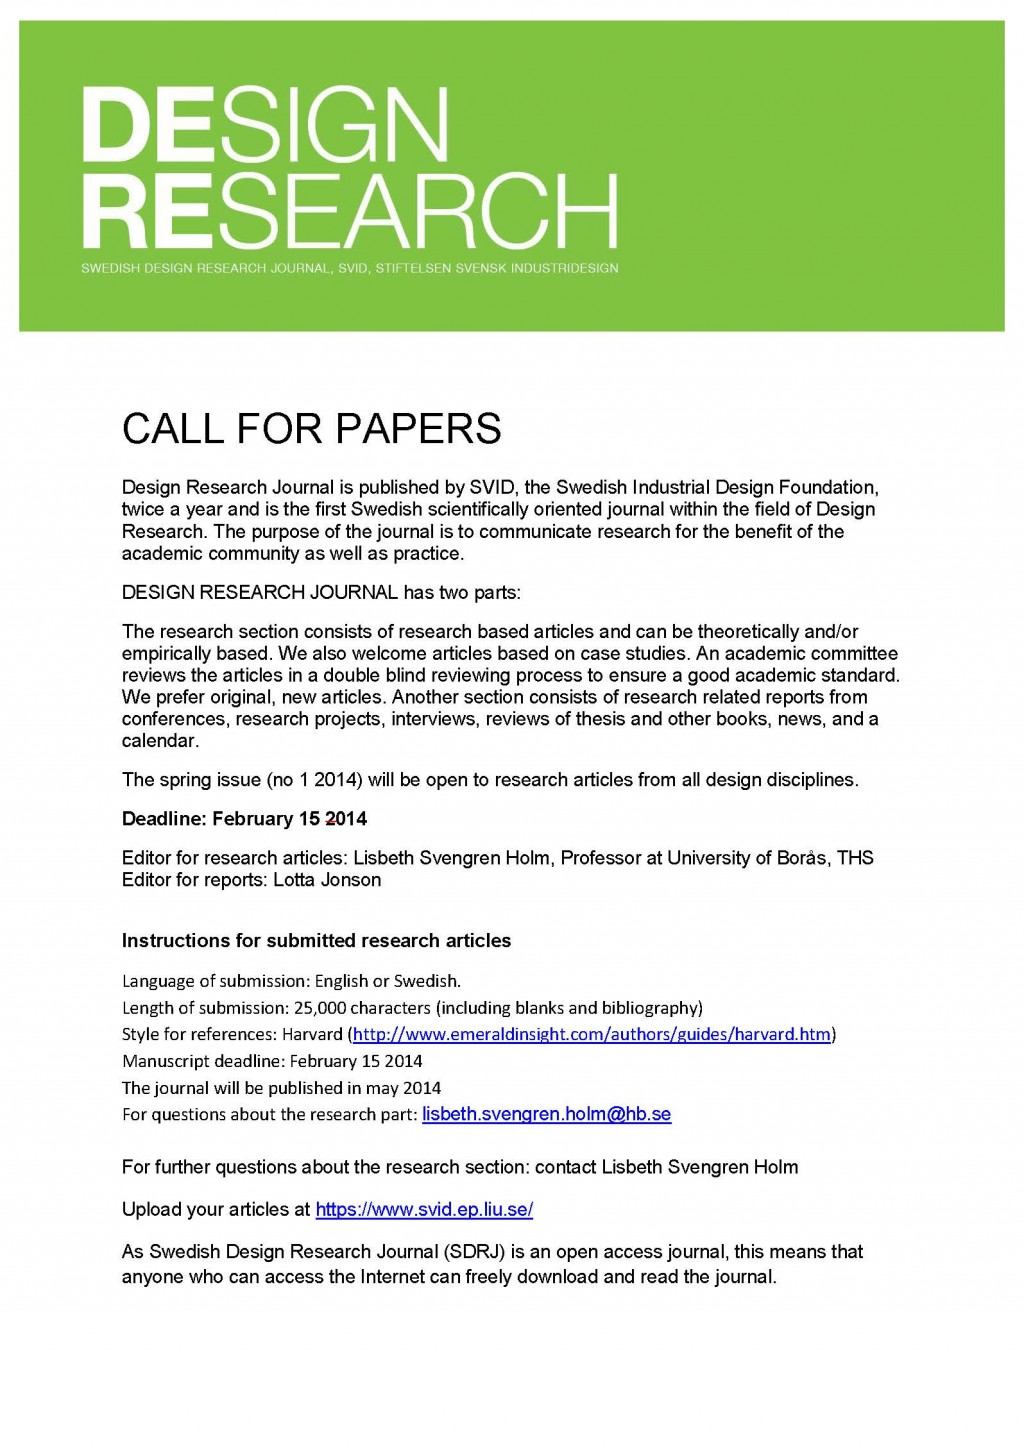 007 Call For Papers Nr 1 2014 Research Paper Stupendous Generator Thesis Download Large